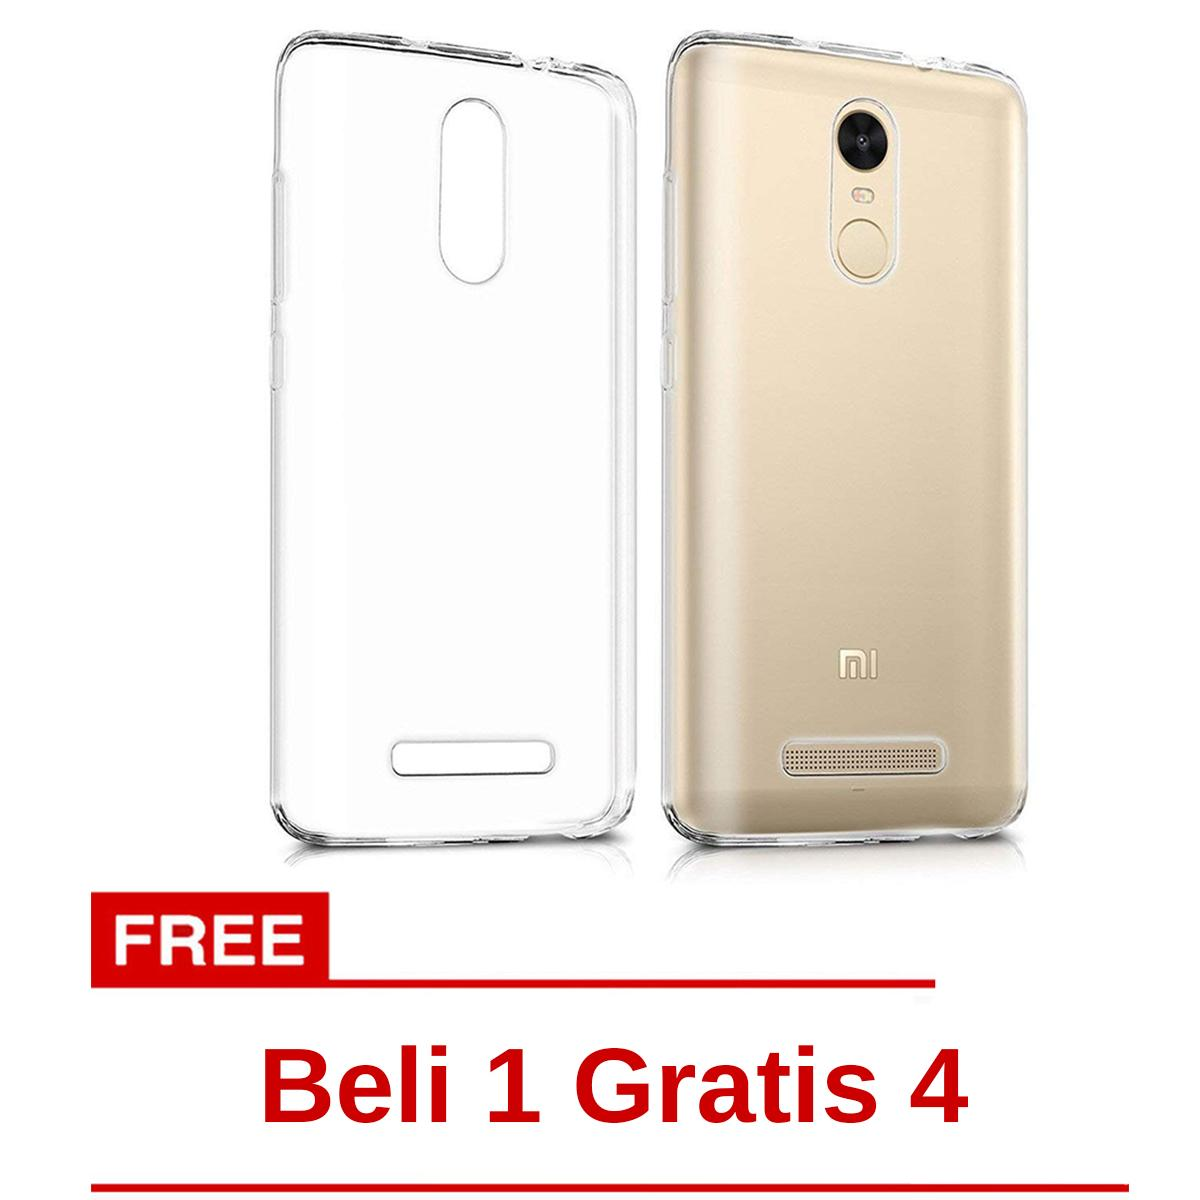 Buy Sell Cheapest G1 4 200 Best Quality Product Deals Indonesian Nestum Bubur Sereal Multigrain 3in1 Polybag X 32g Susu Pisang Cuci Gudang Xiaomi Redmi Note 3 4g Softcase Tpu Clear Case Ultrathin Air